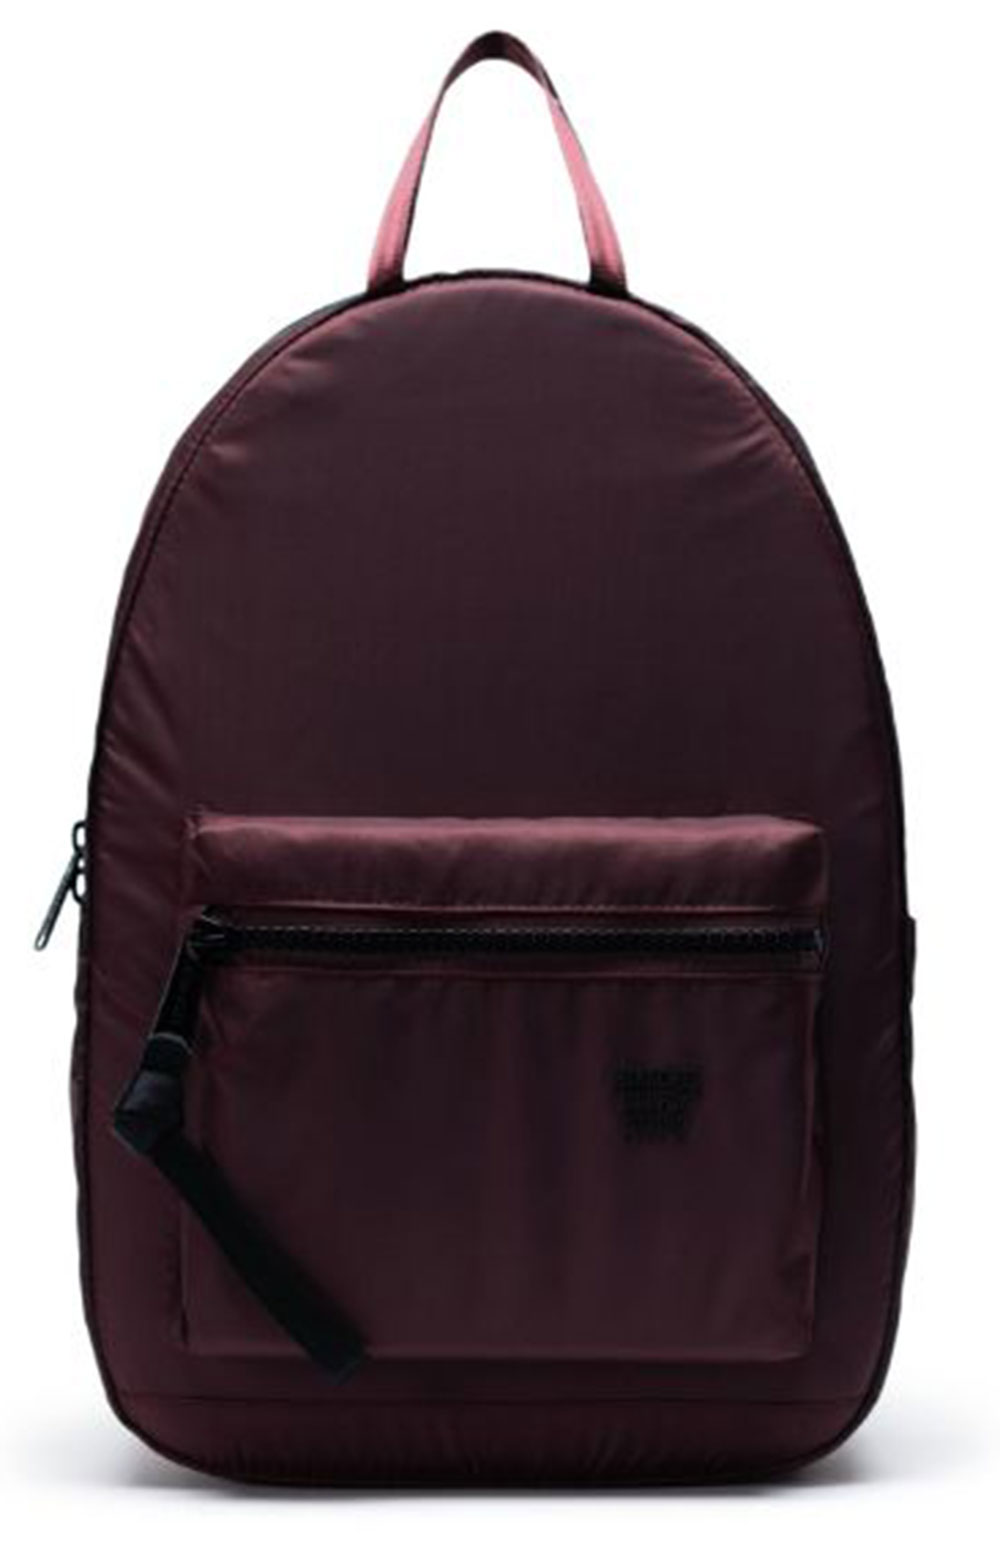 HS6 Backpack Studio - Plum/Black